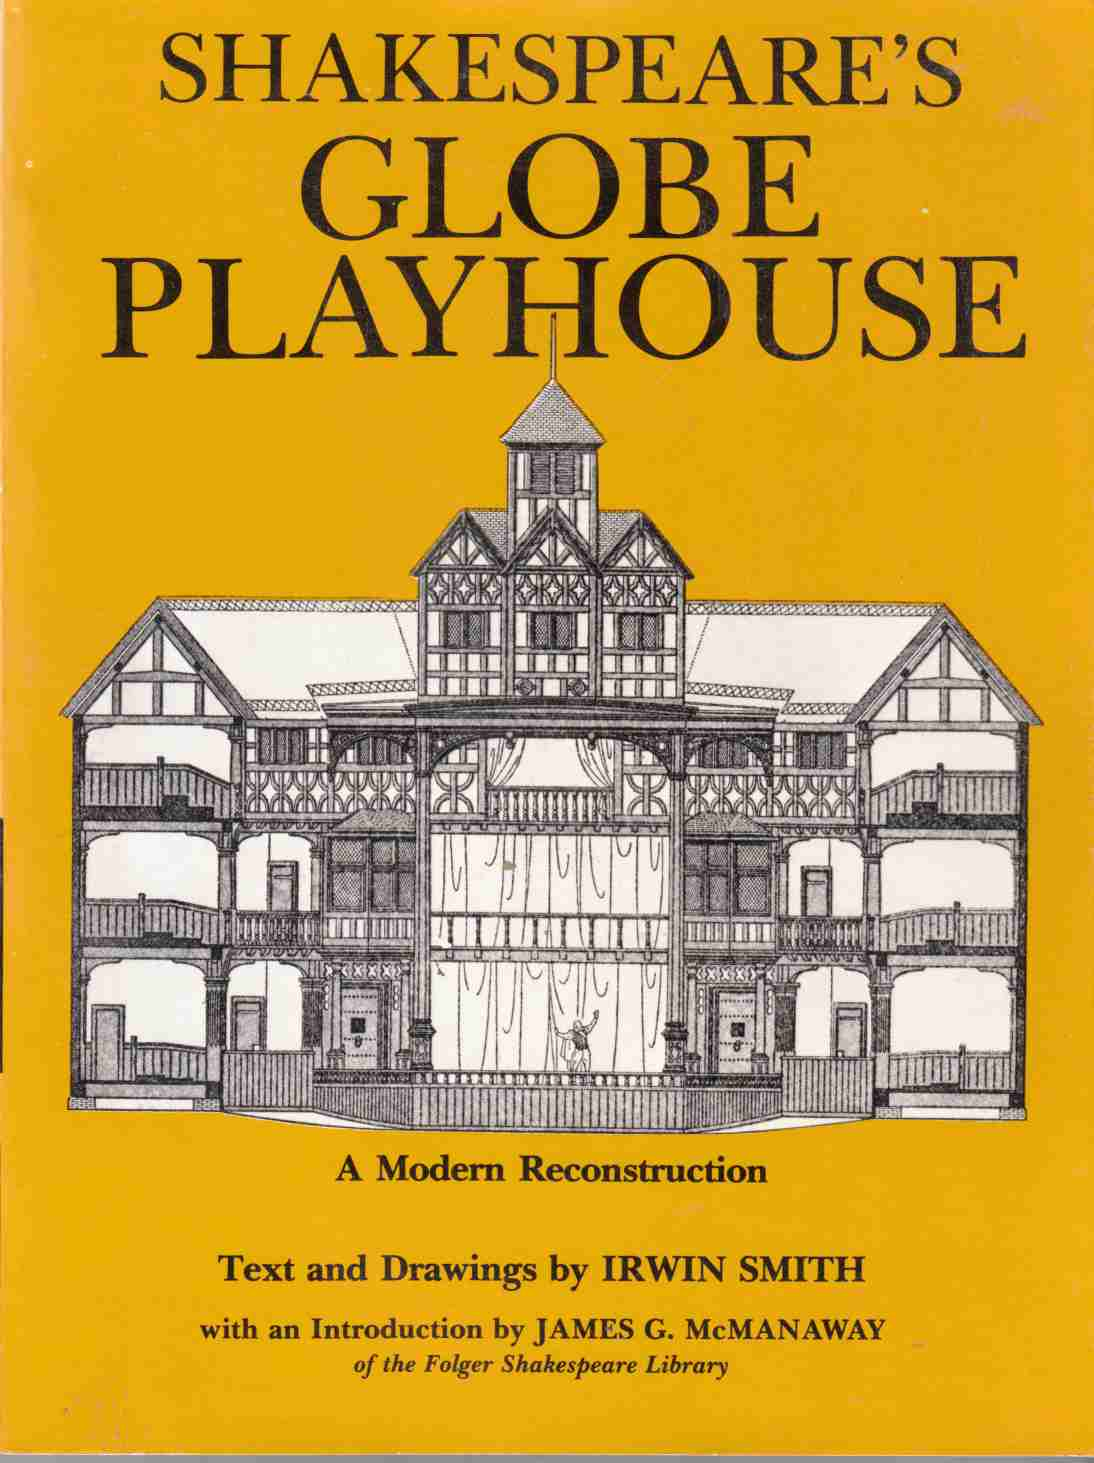 Image for Shalespeare's Globe Playhouse A Modern Reconstruction in Text and Drawings